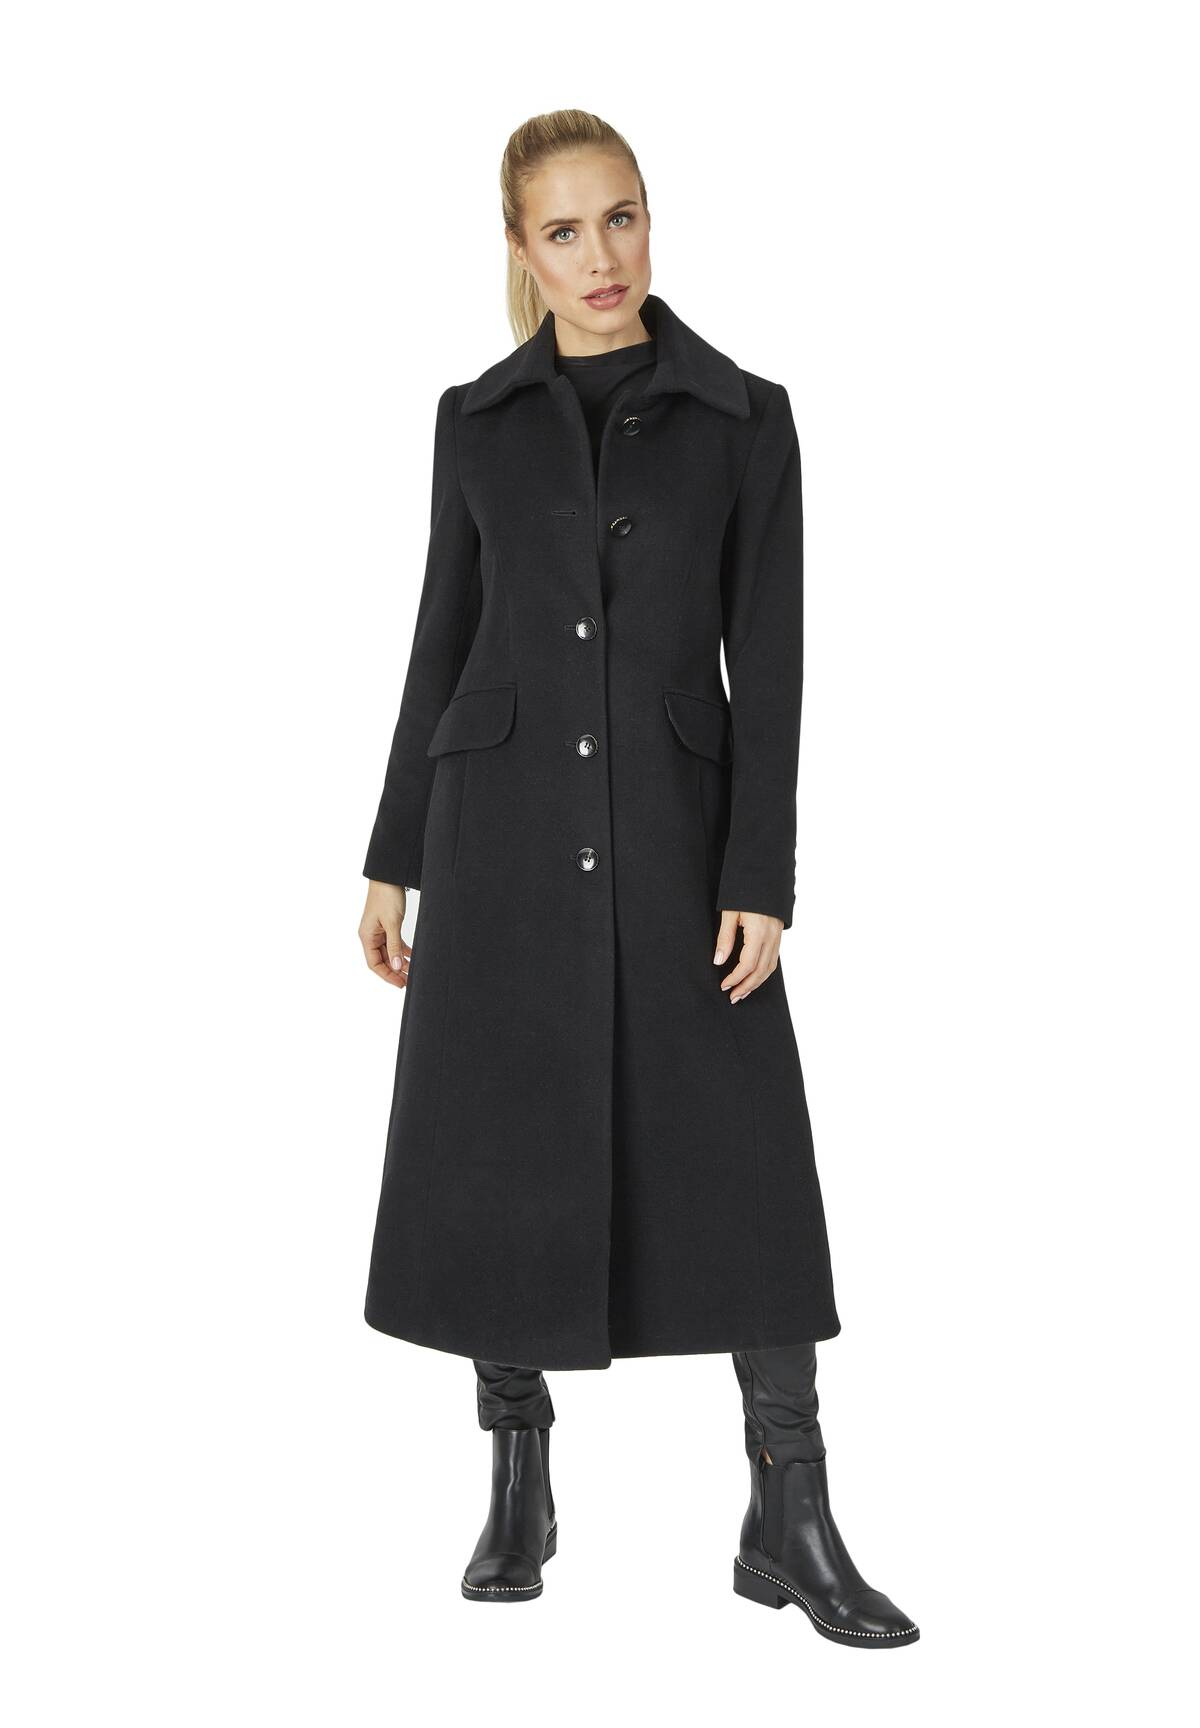 Manteau long cintré /